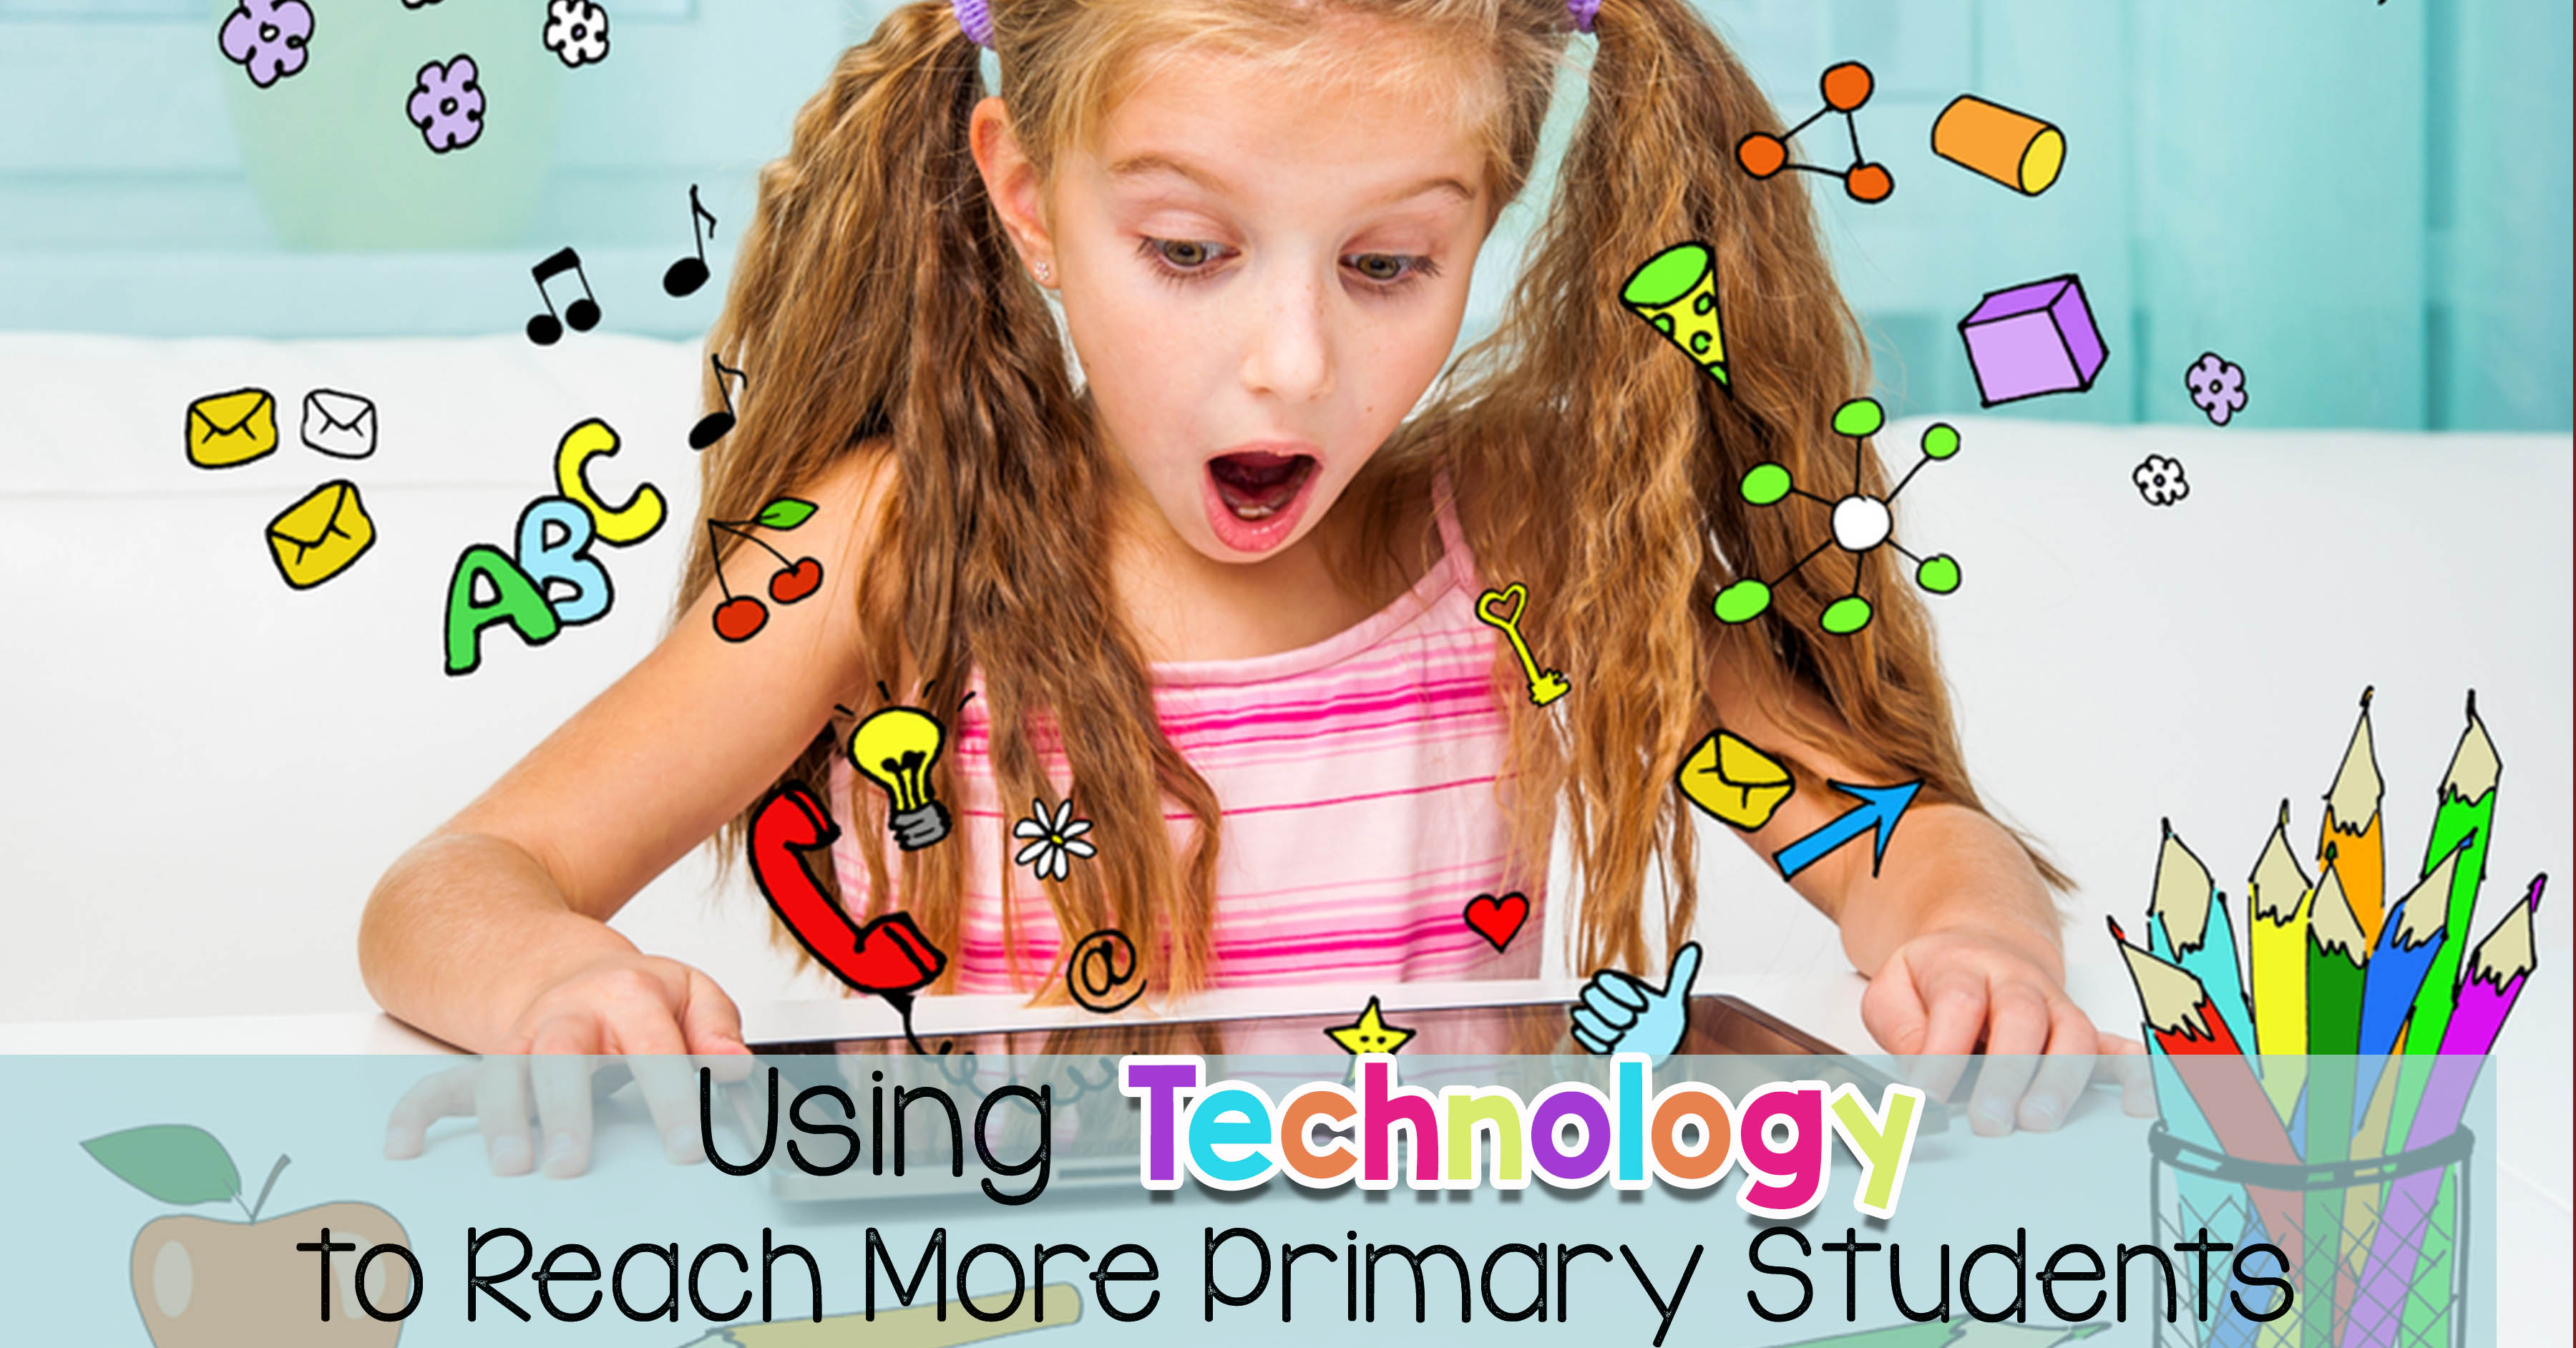 using technology in the primary classroom to reach more students